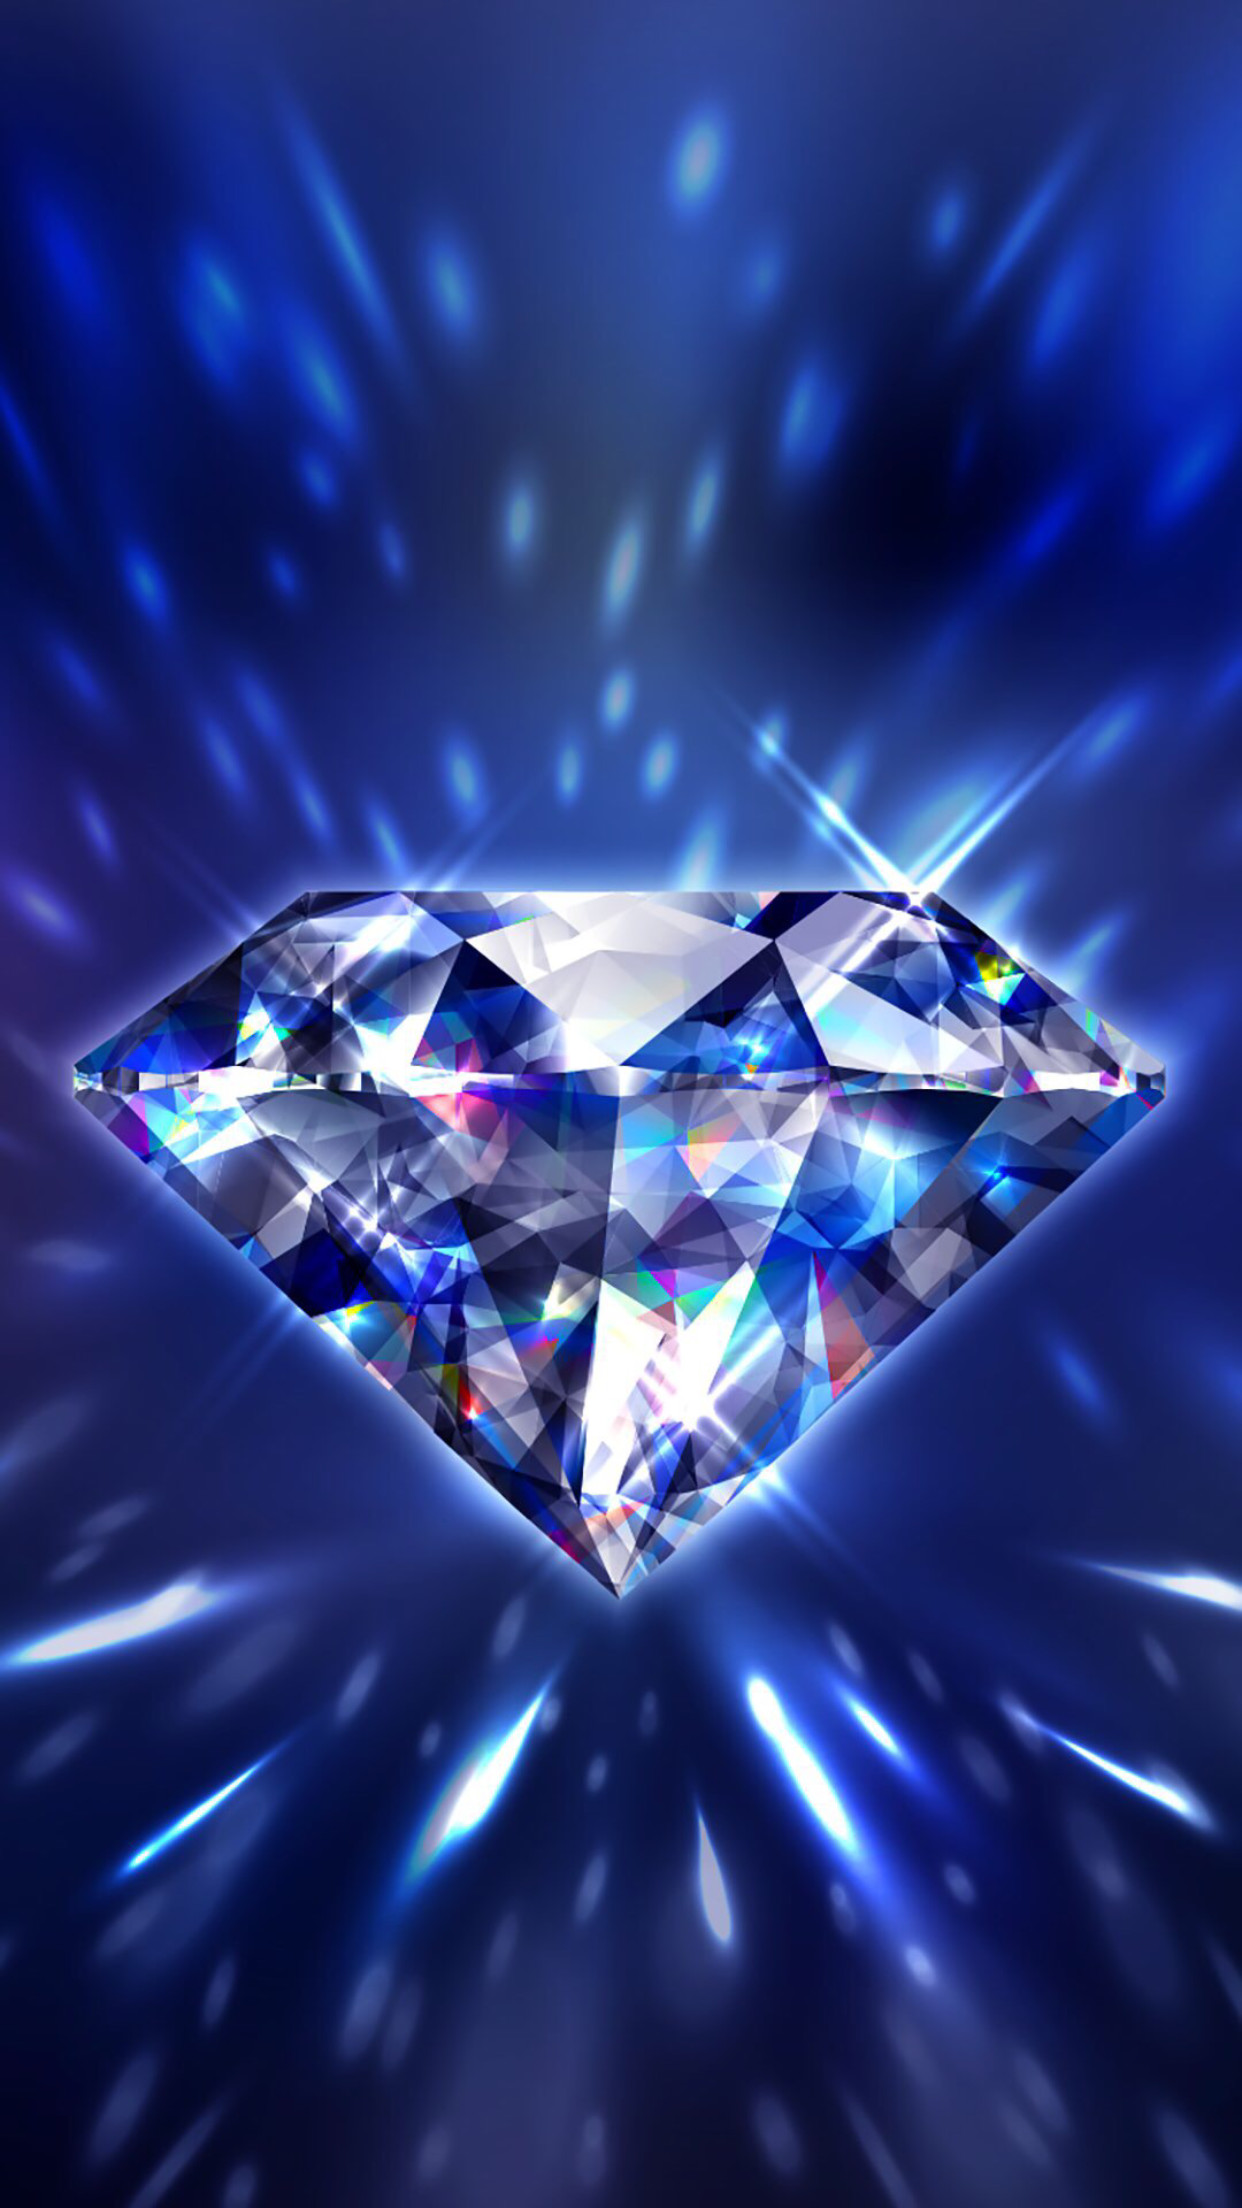 Purple Diamond Wallpaper 68 images